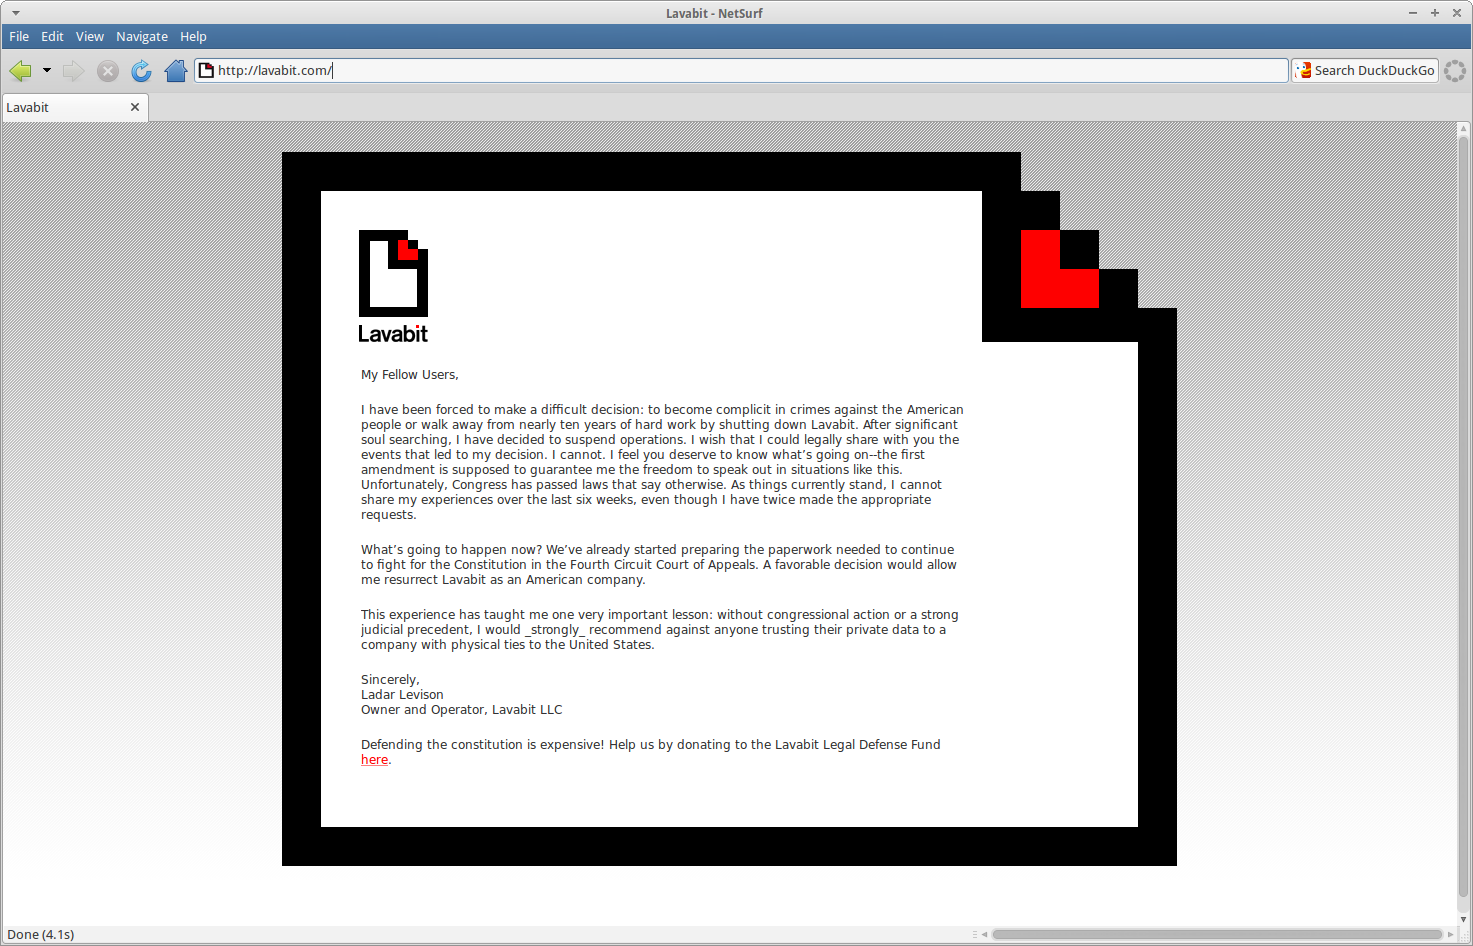 Levison says on the front (and now only) page of the Lavabit site: